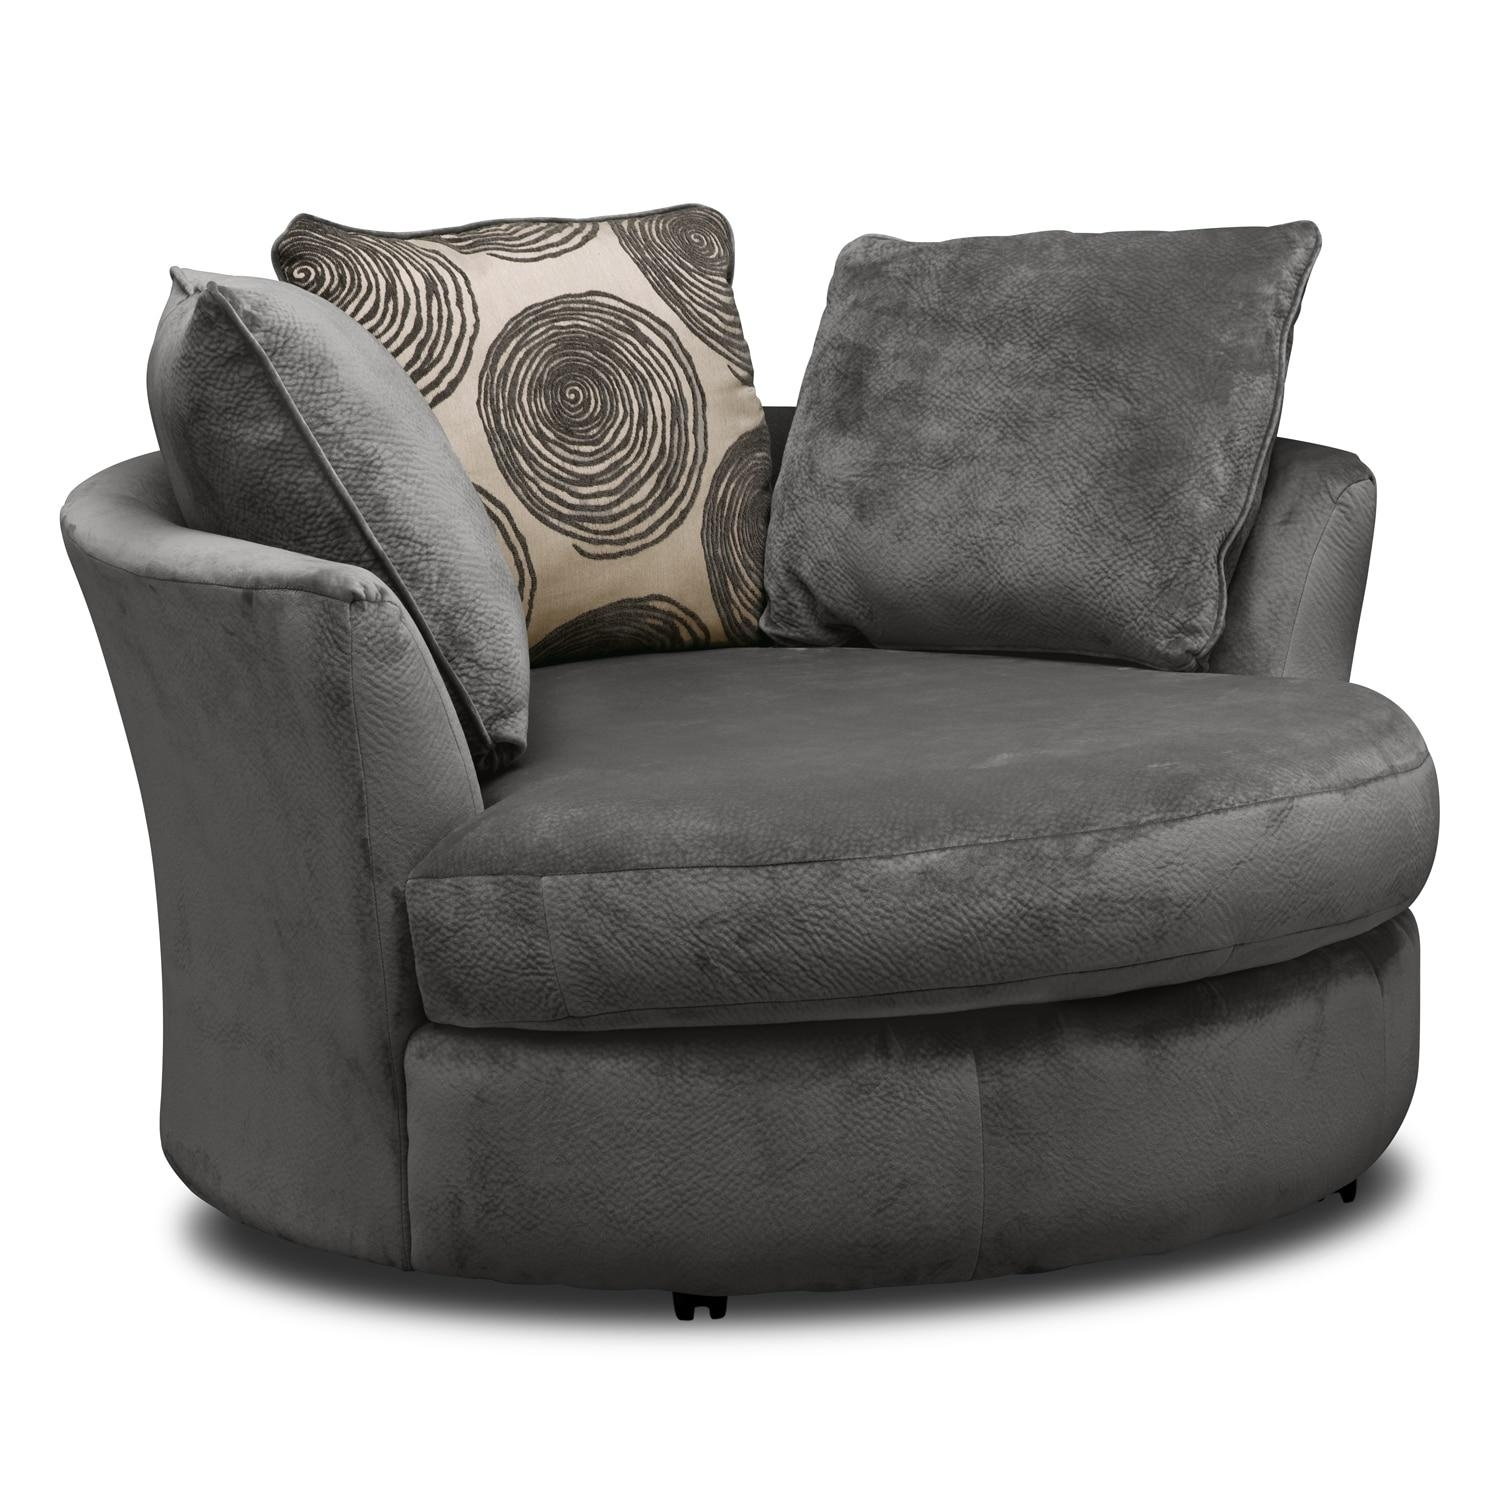 Cordelle Swivel Chair – Gray | Value City Furniture Regarding Spinning Sofa Chairs (View 2 of 20)